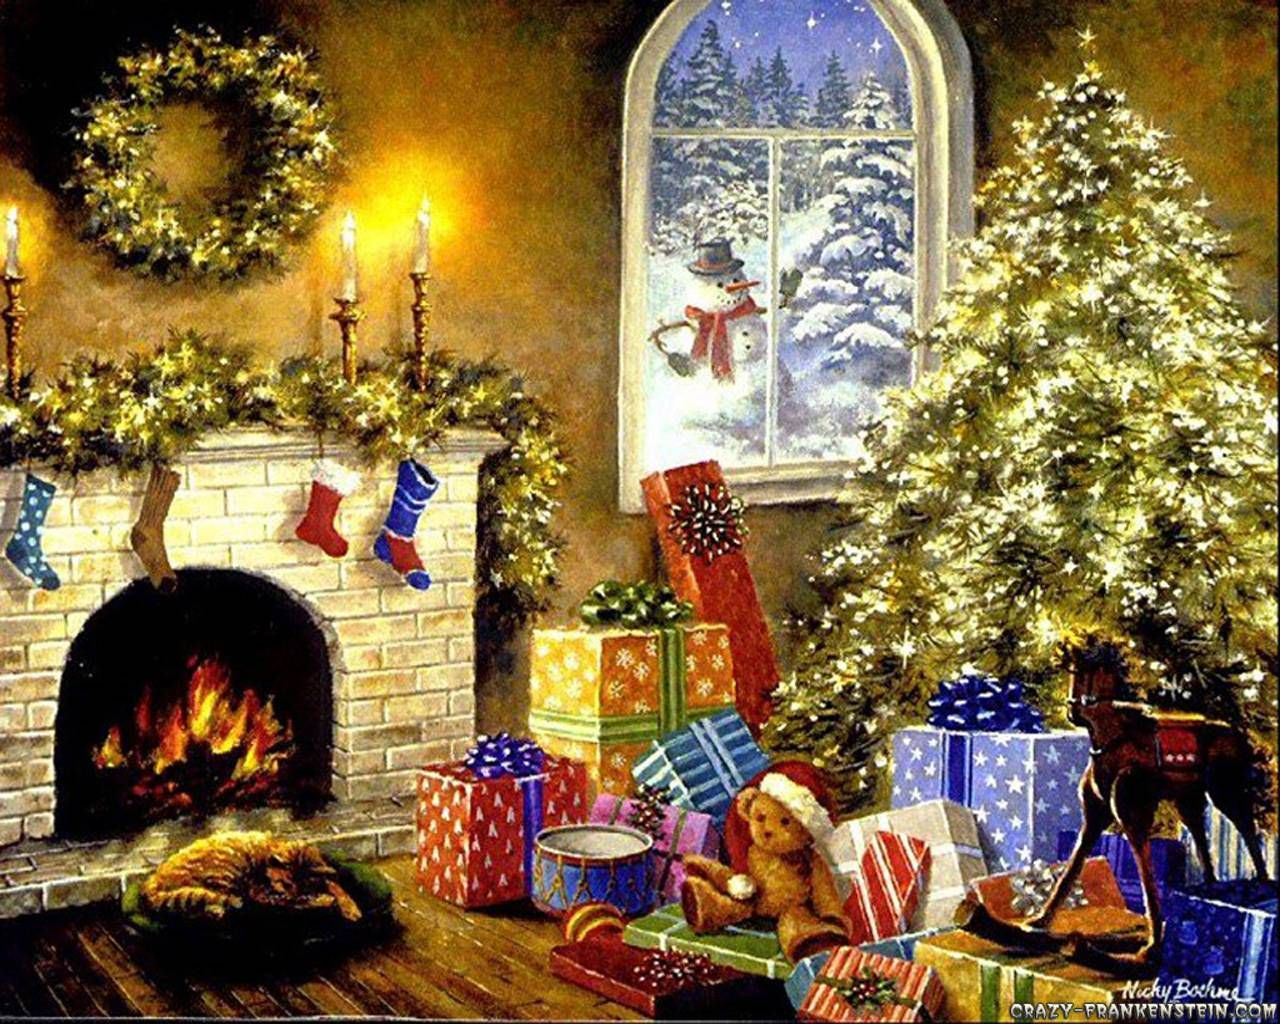 Of Living Rooms Decorated For Christmas Home Design Christmas Living Room Ideas Cartoon Christmas Living